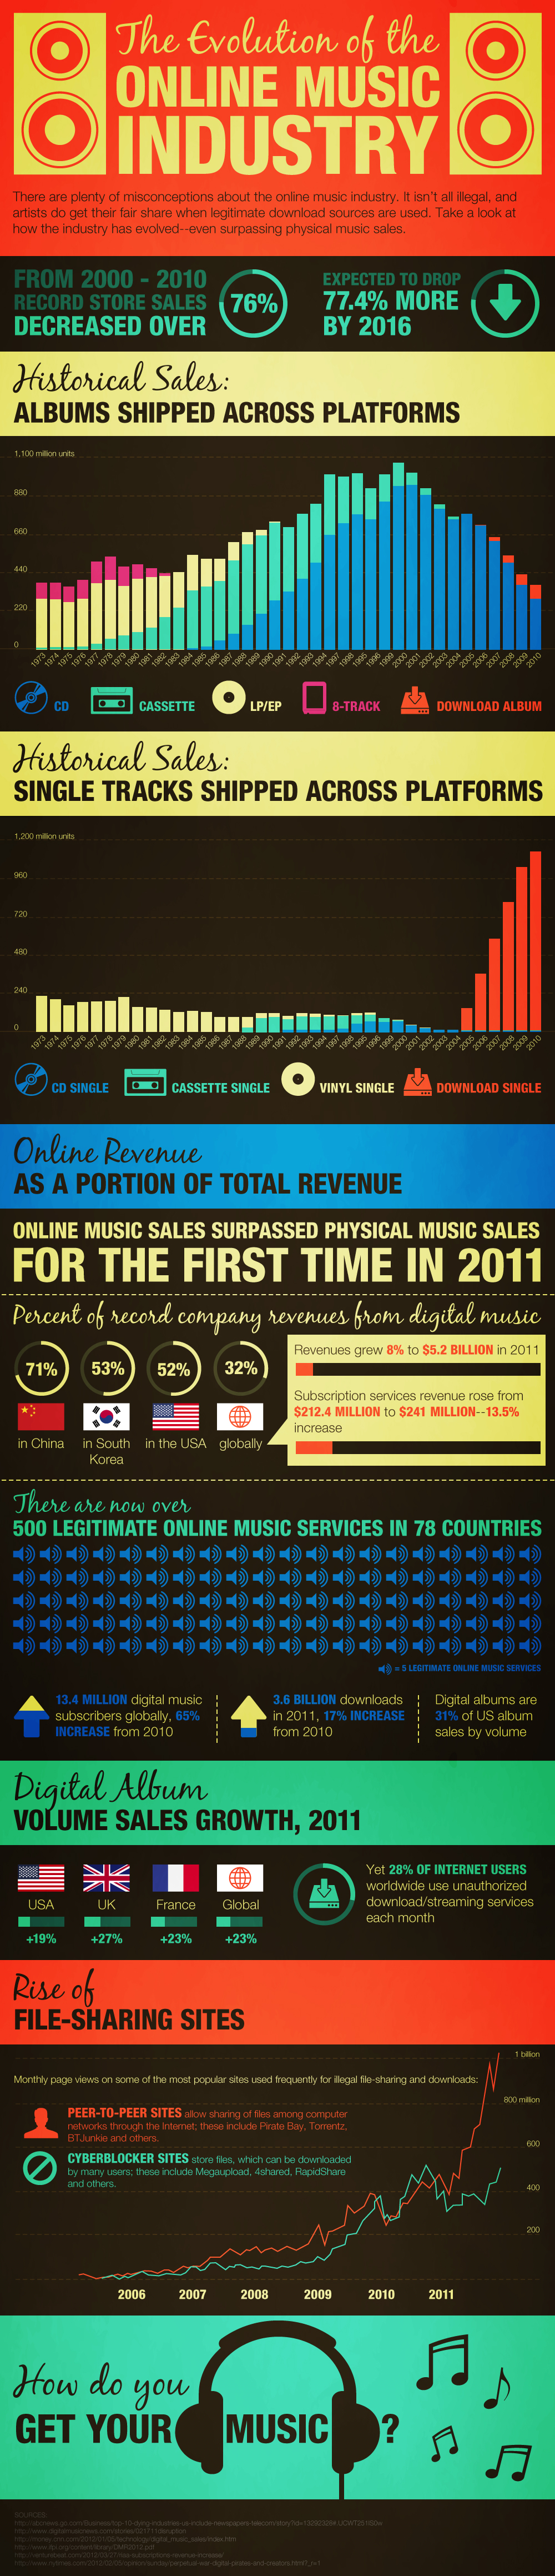 The Evolution of the Online Music Industry